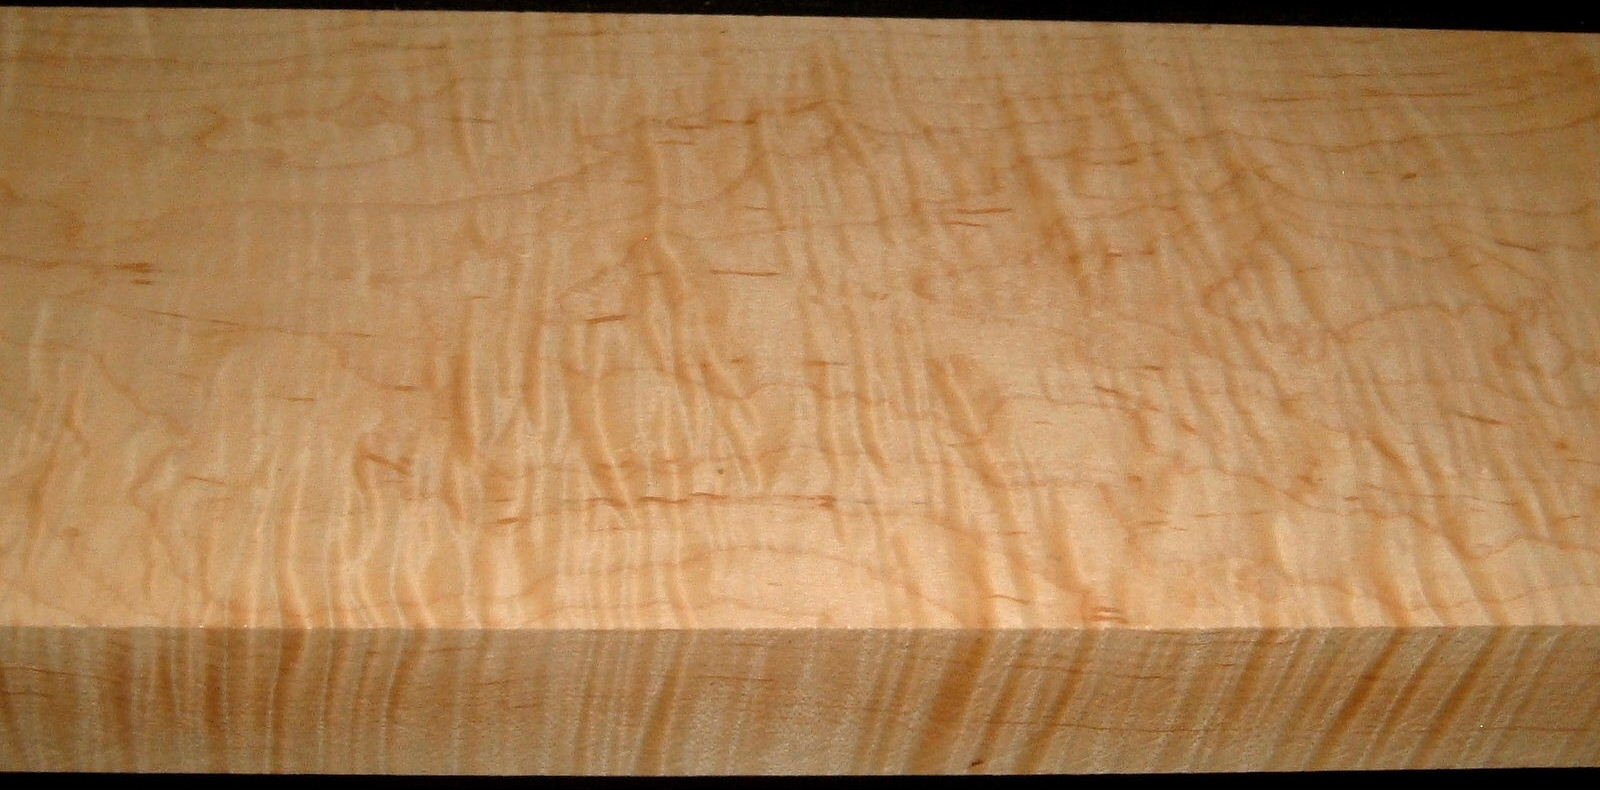 HM2001-3, 1-13/16x7-1/4x40, Curly Tiger Hard Maple